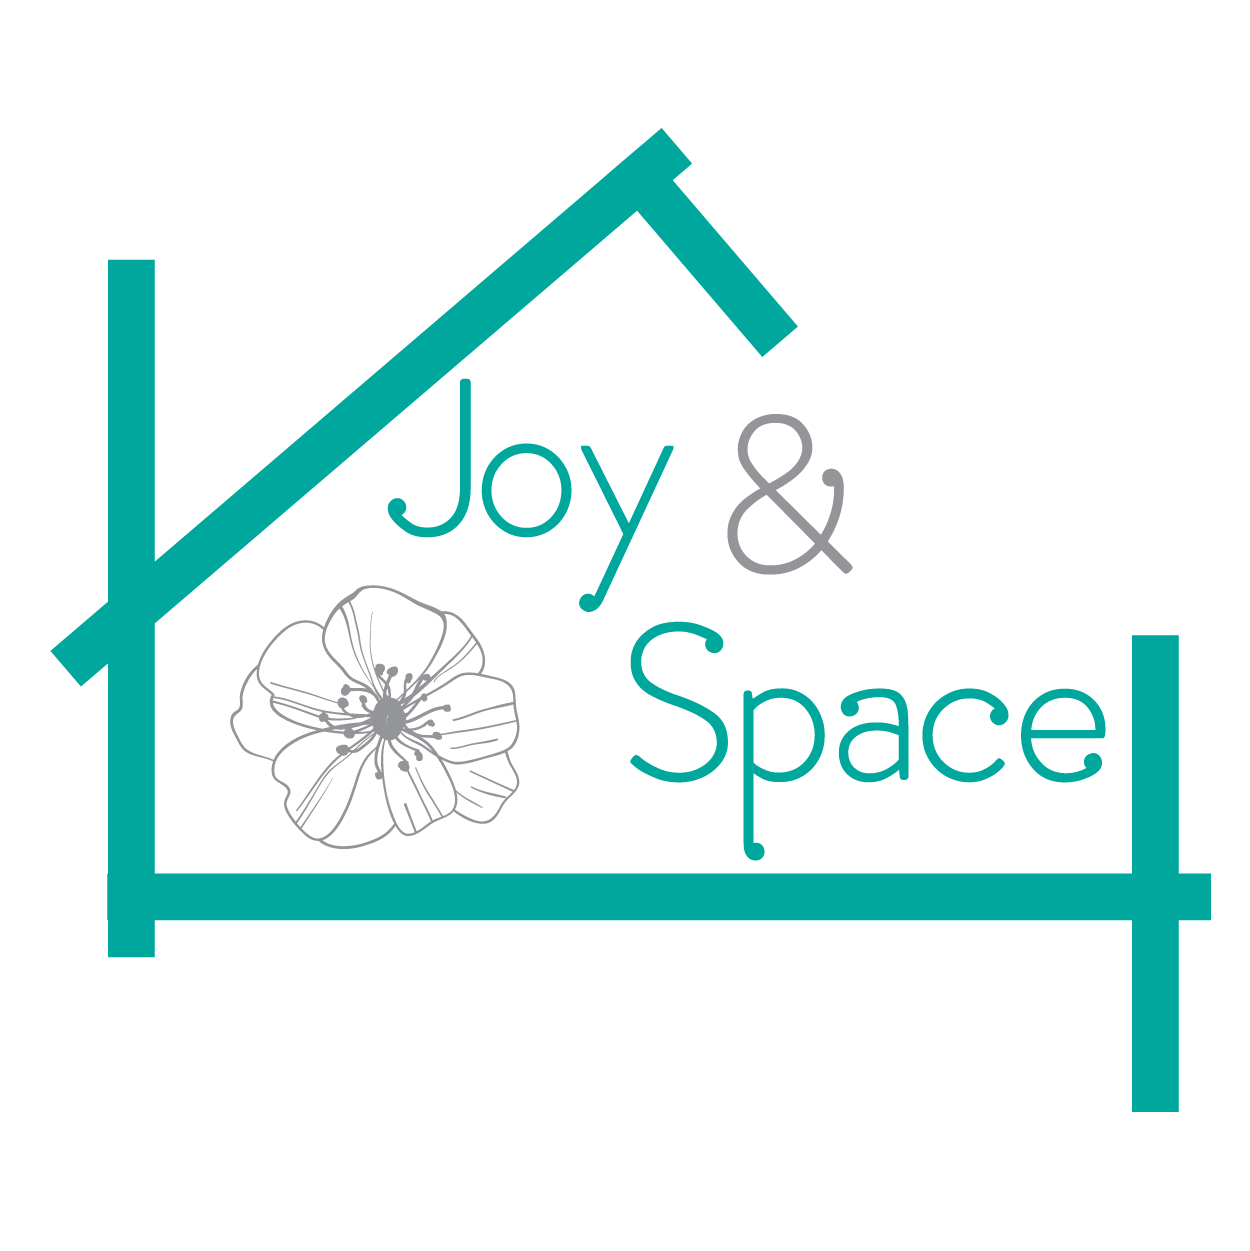 Joy & Space LLC